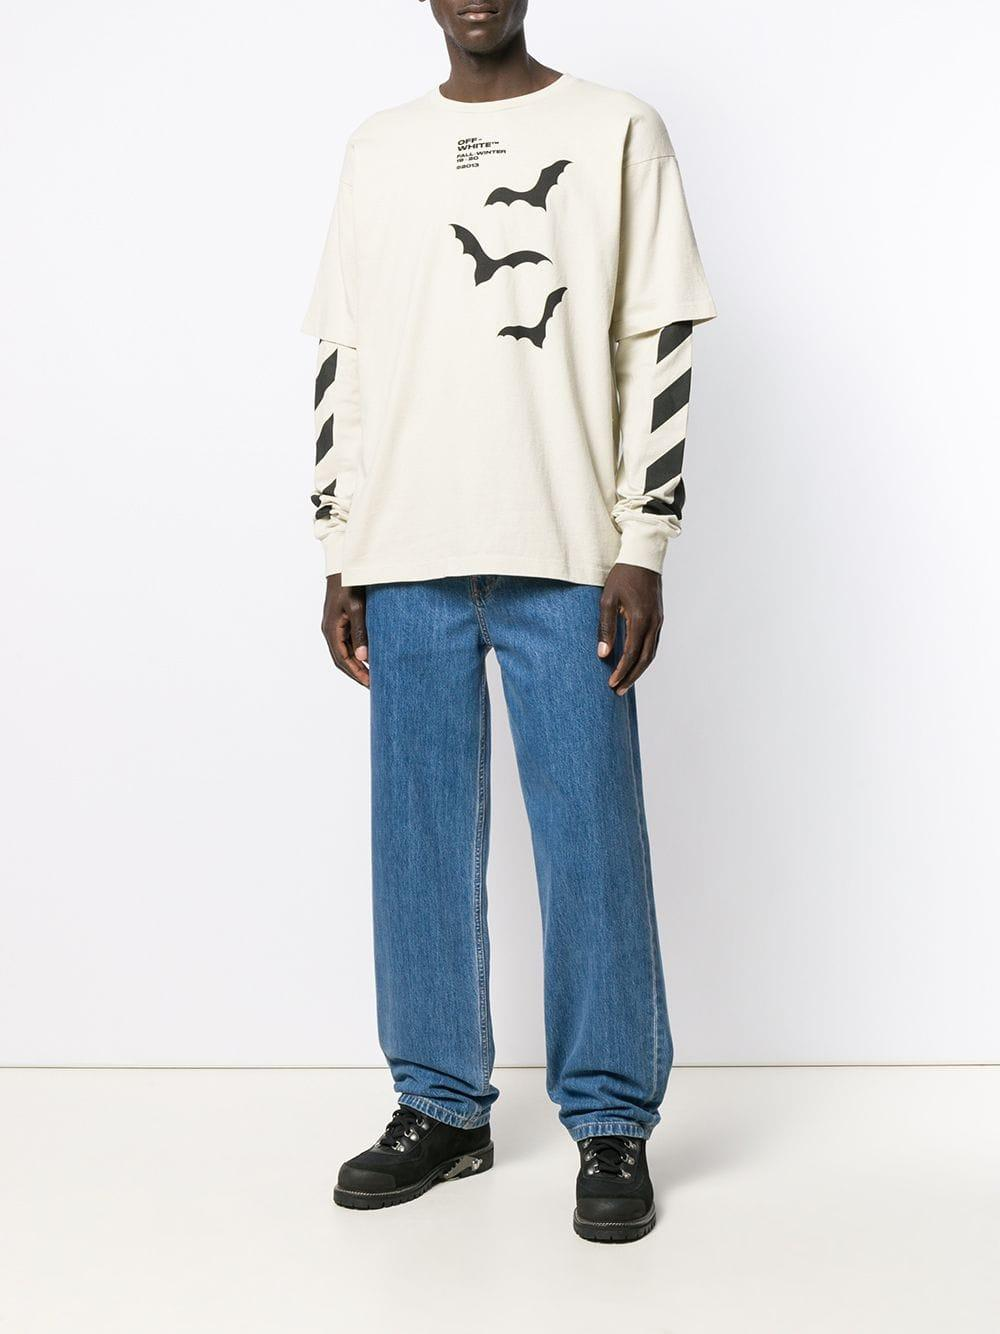 23113aeea71 Off-White c/o Virgil Abloh Diagonal Bats Double Sleeve T-shirt in Natural  for Men - Save 30% - Lyst